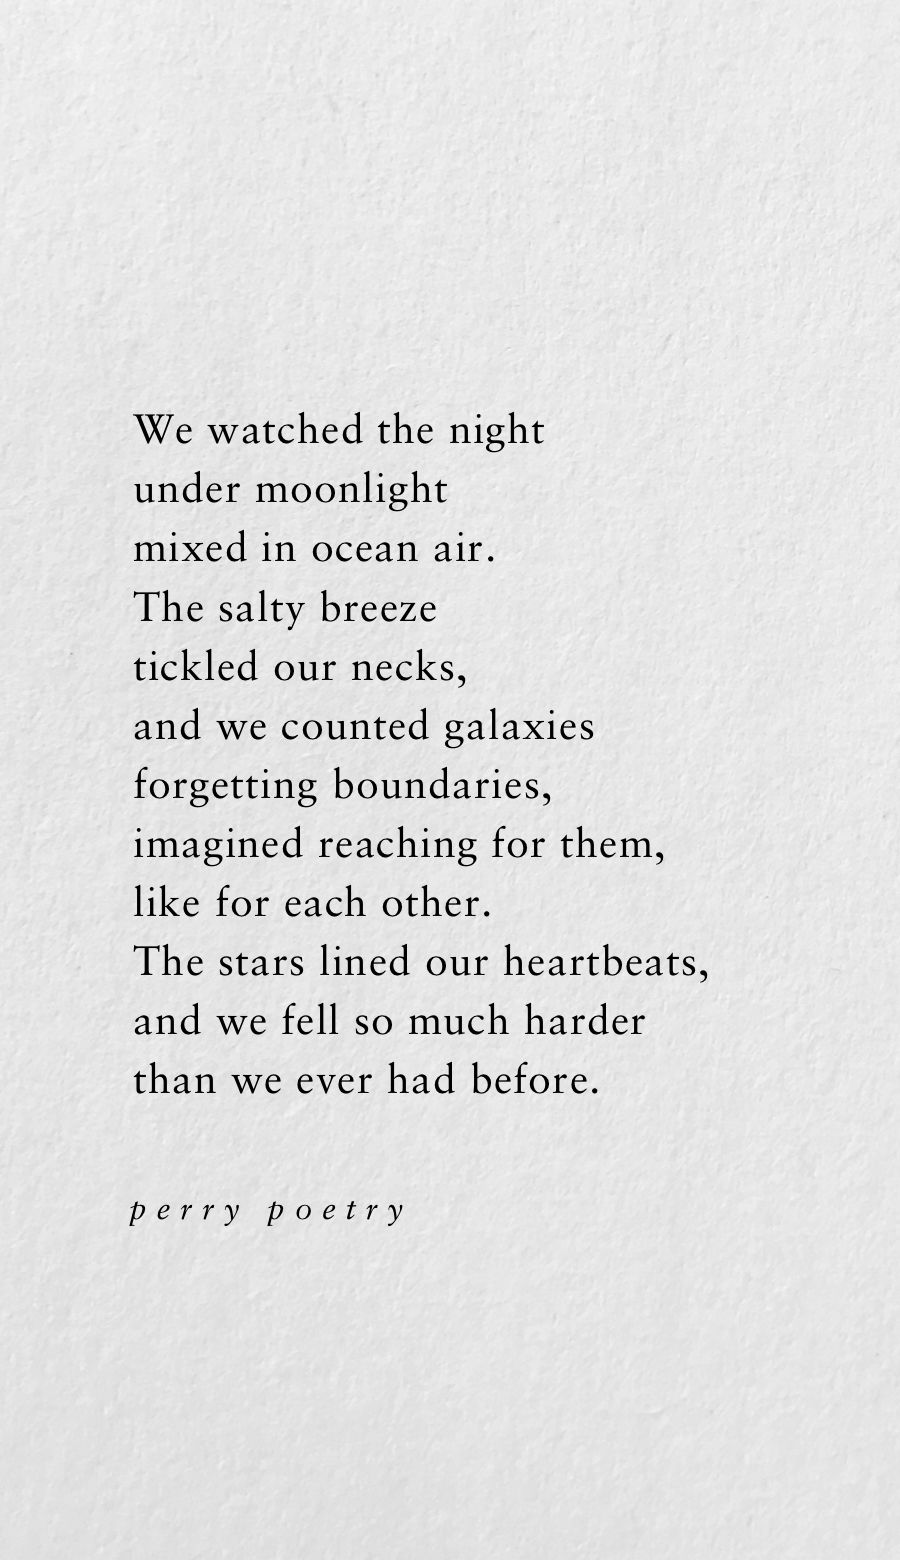 Follow @perrypoetry On Instagram For Daily Poetry. #poem #poetry #poems #